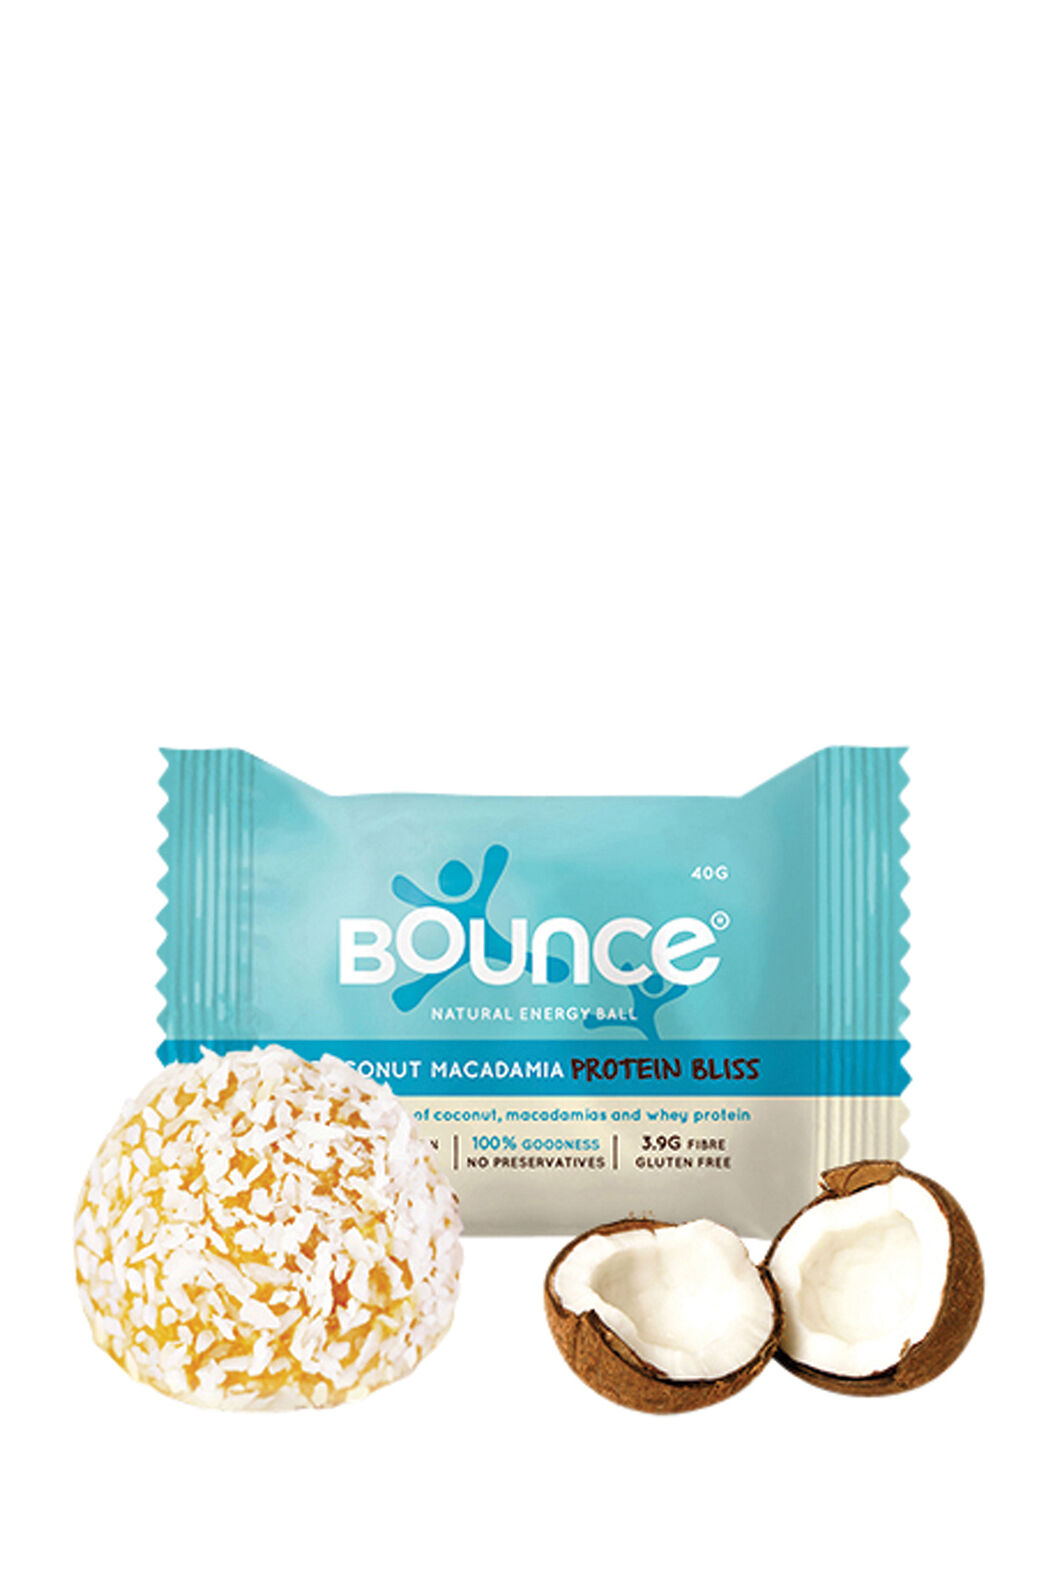 Bounce Coconut Macadamia Protein Bliss Ball, None, hi-res